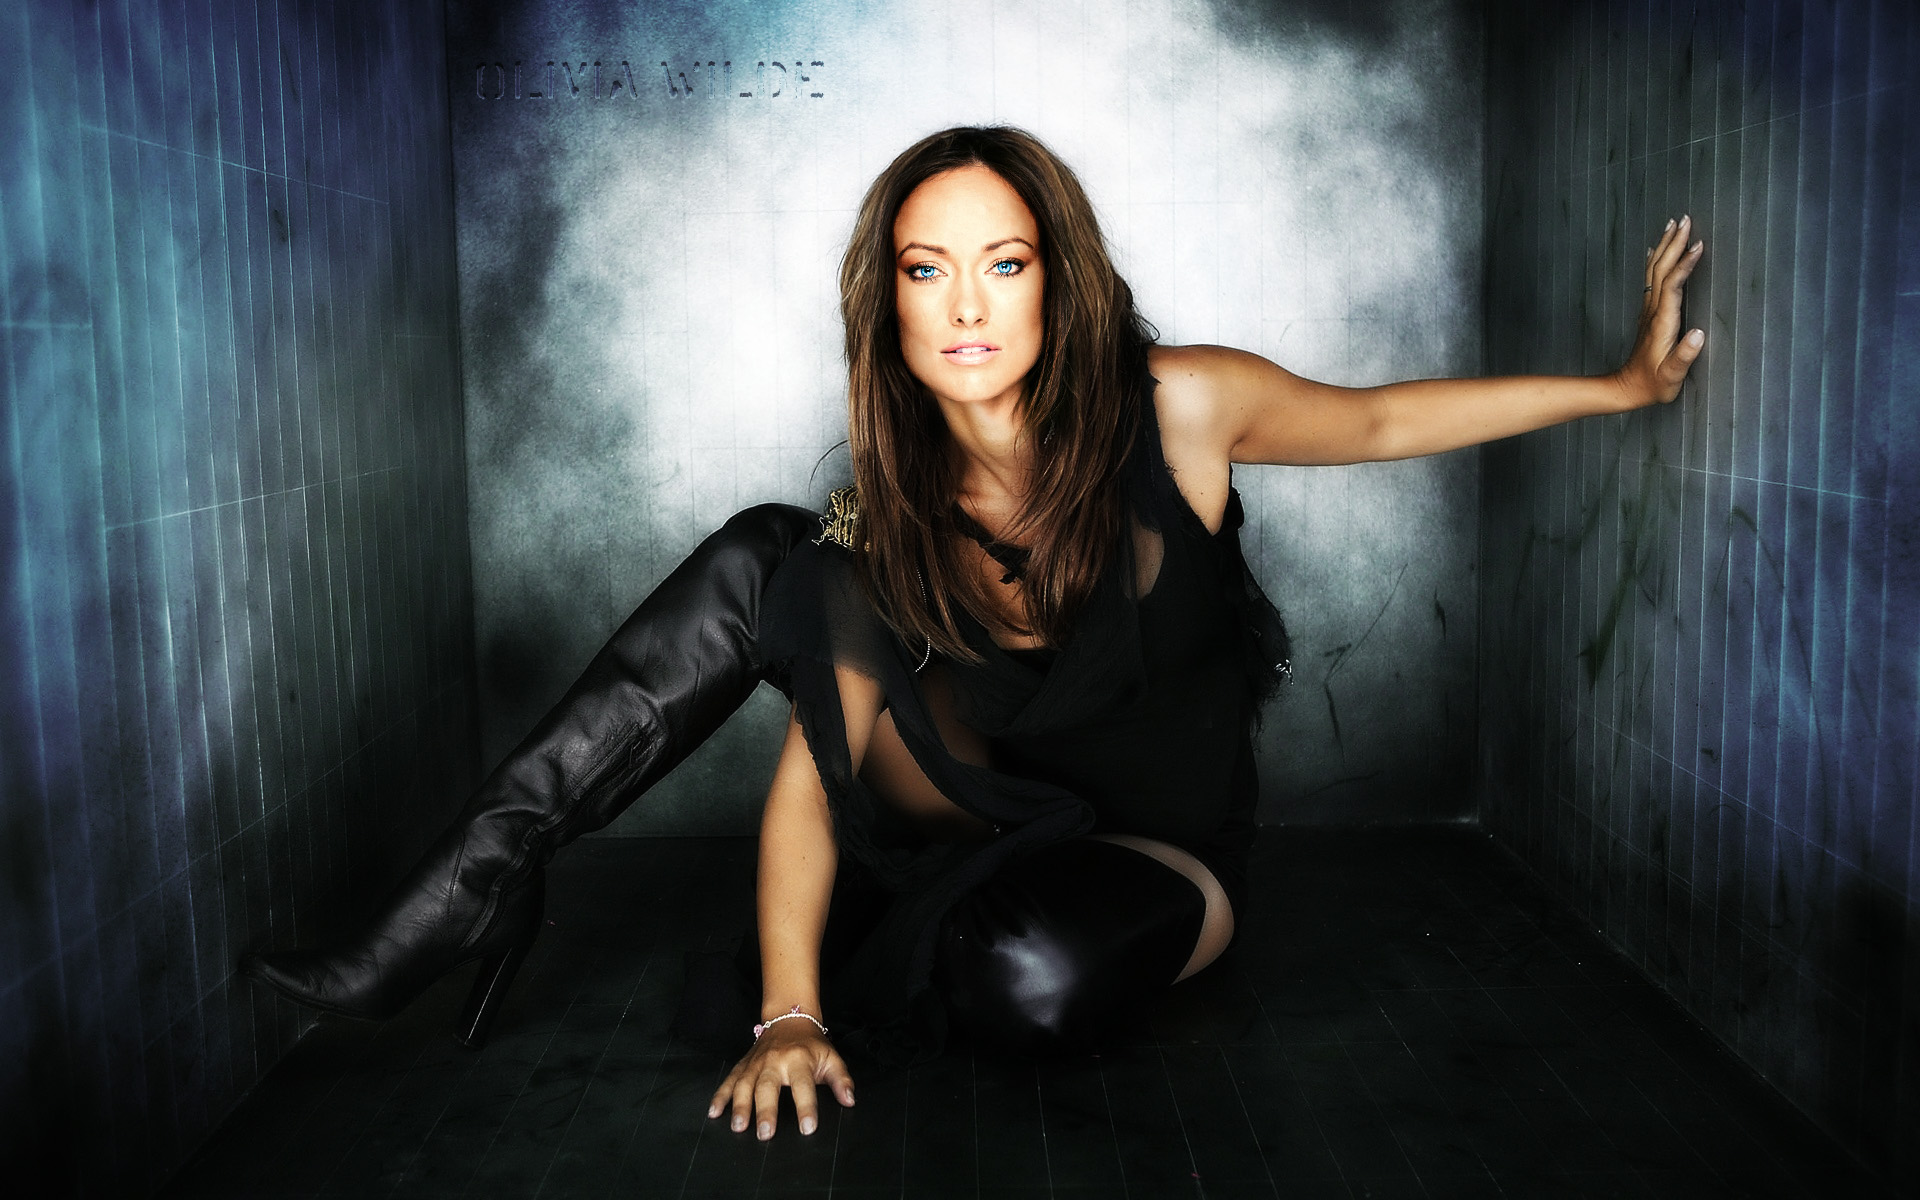 Olivia Wilde 1900x1200 - Wallpaper, High Definition, High ... Hd Wallpapers 1920x1080 Women